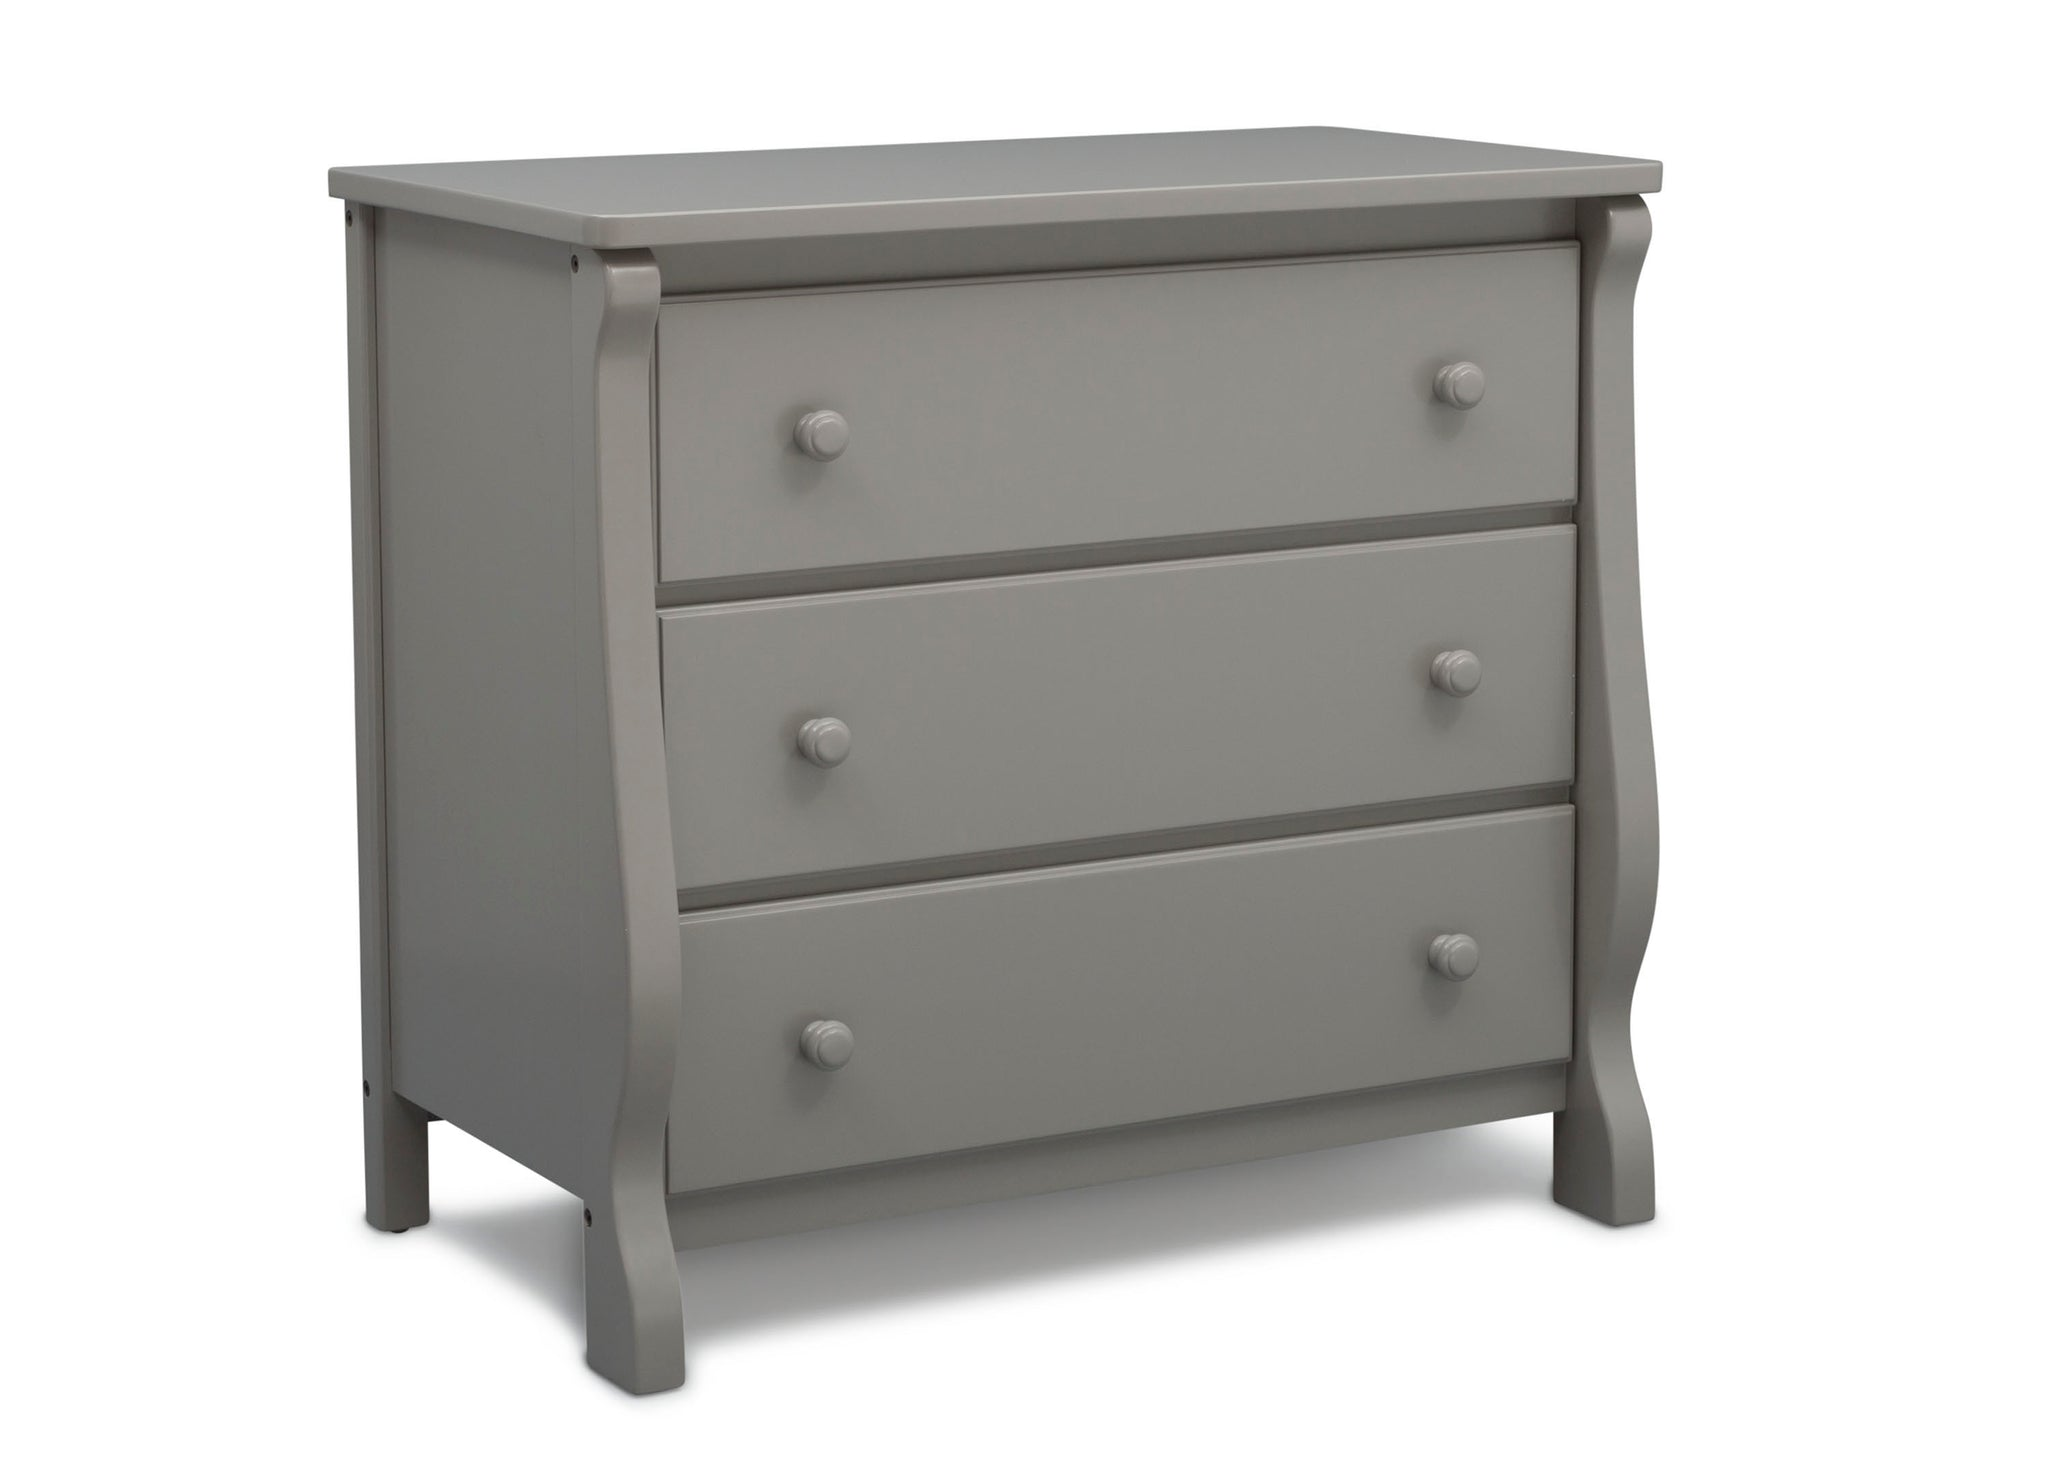 Delta Children Grey (026) Universal 3 Drawer Dresser Right Silo View